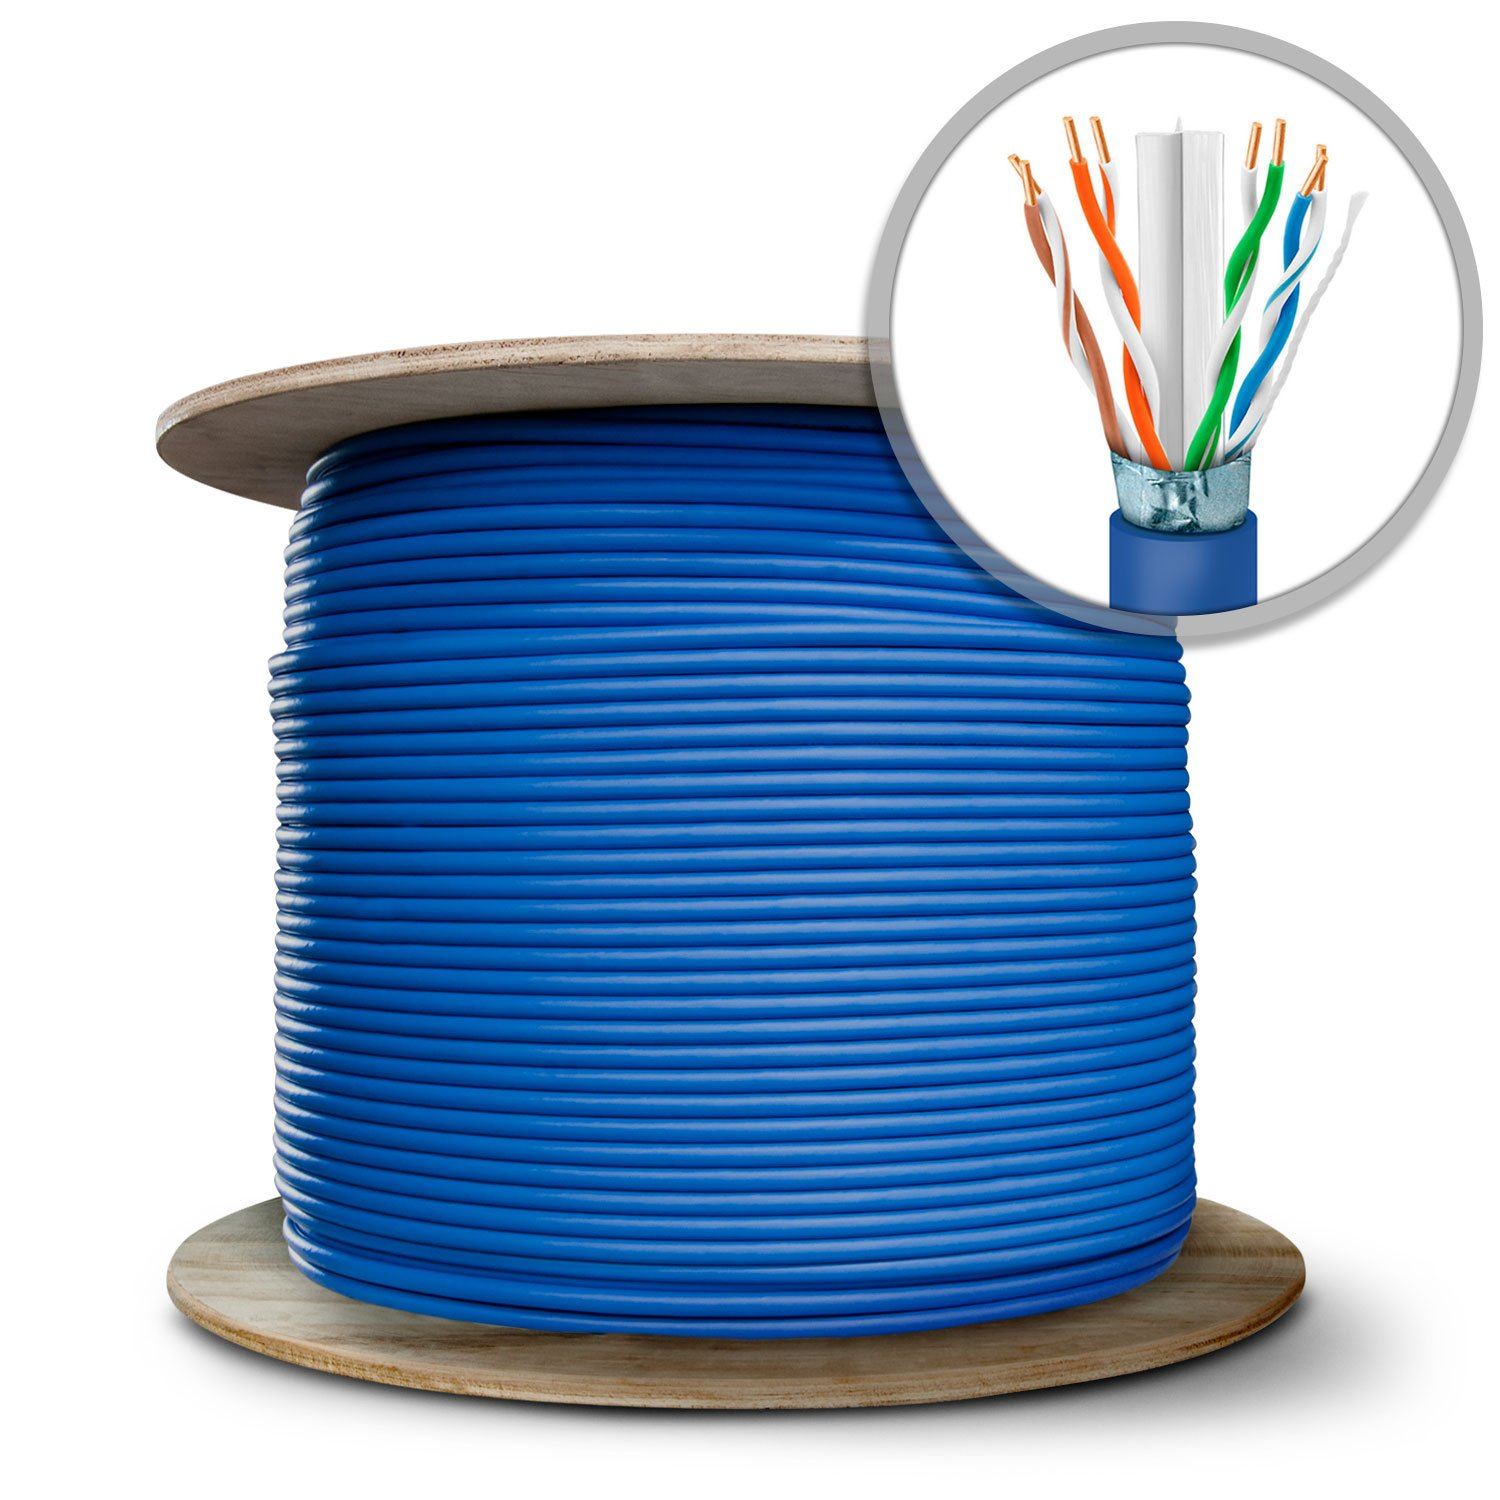 GearIT 1000 Feet Bulk Cat6a Augmented 10 Gig Shielded Ethernet Cable for Indoor / Ourdoor - Solid Twisted Pair - Cat 6a 23AWG STP Full Copper Wire PVC UV in Spool, Blue